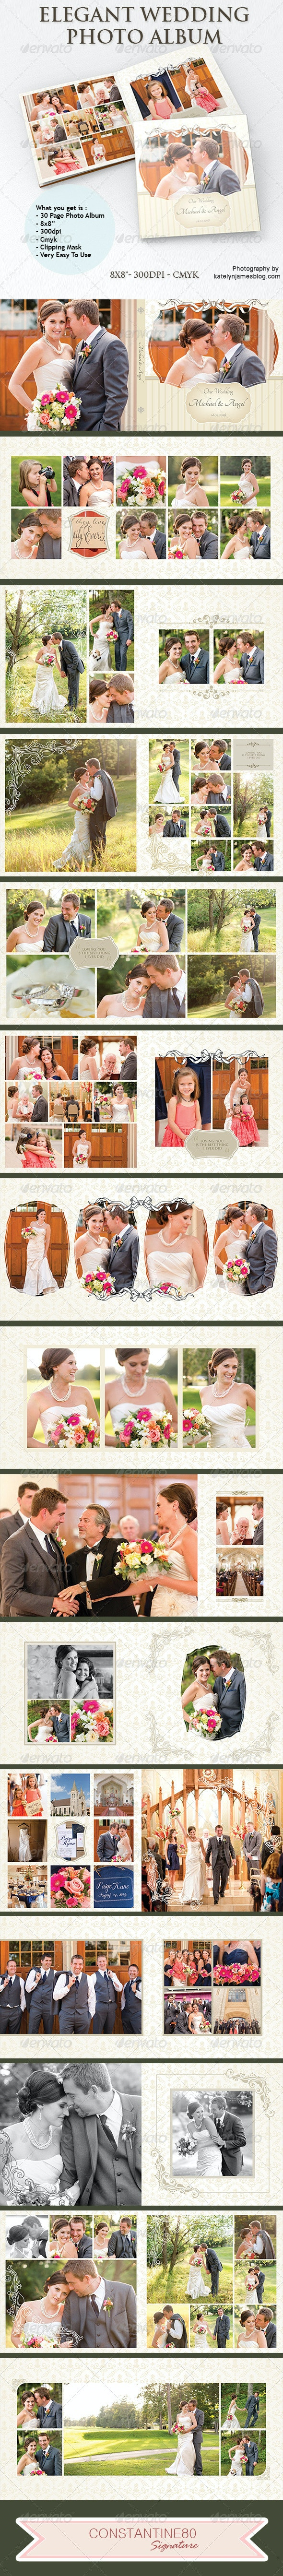 Elegant Wedding Photo Album - Photo Albums Print Templates